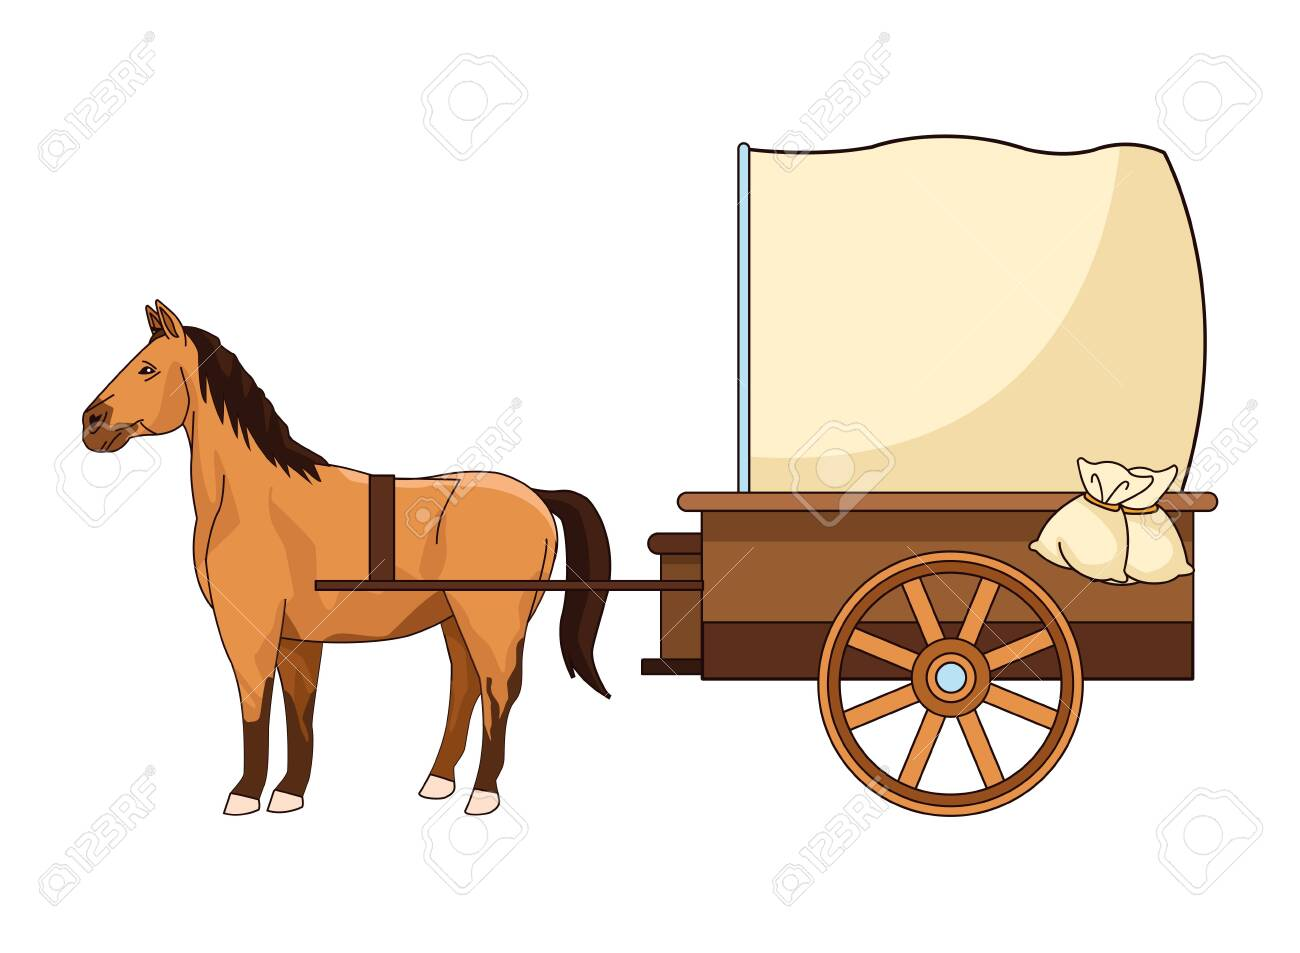 Antique Horse Carriage Animal Tractor Vector Illustration Graphic Royalty Free Cliparts Vectors And Stock Illustration Image 136512849